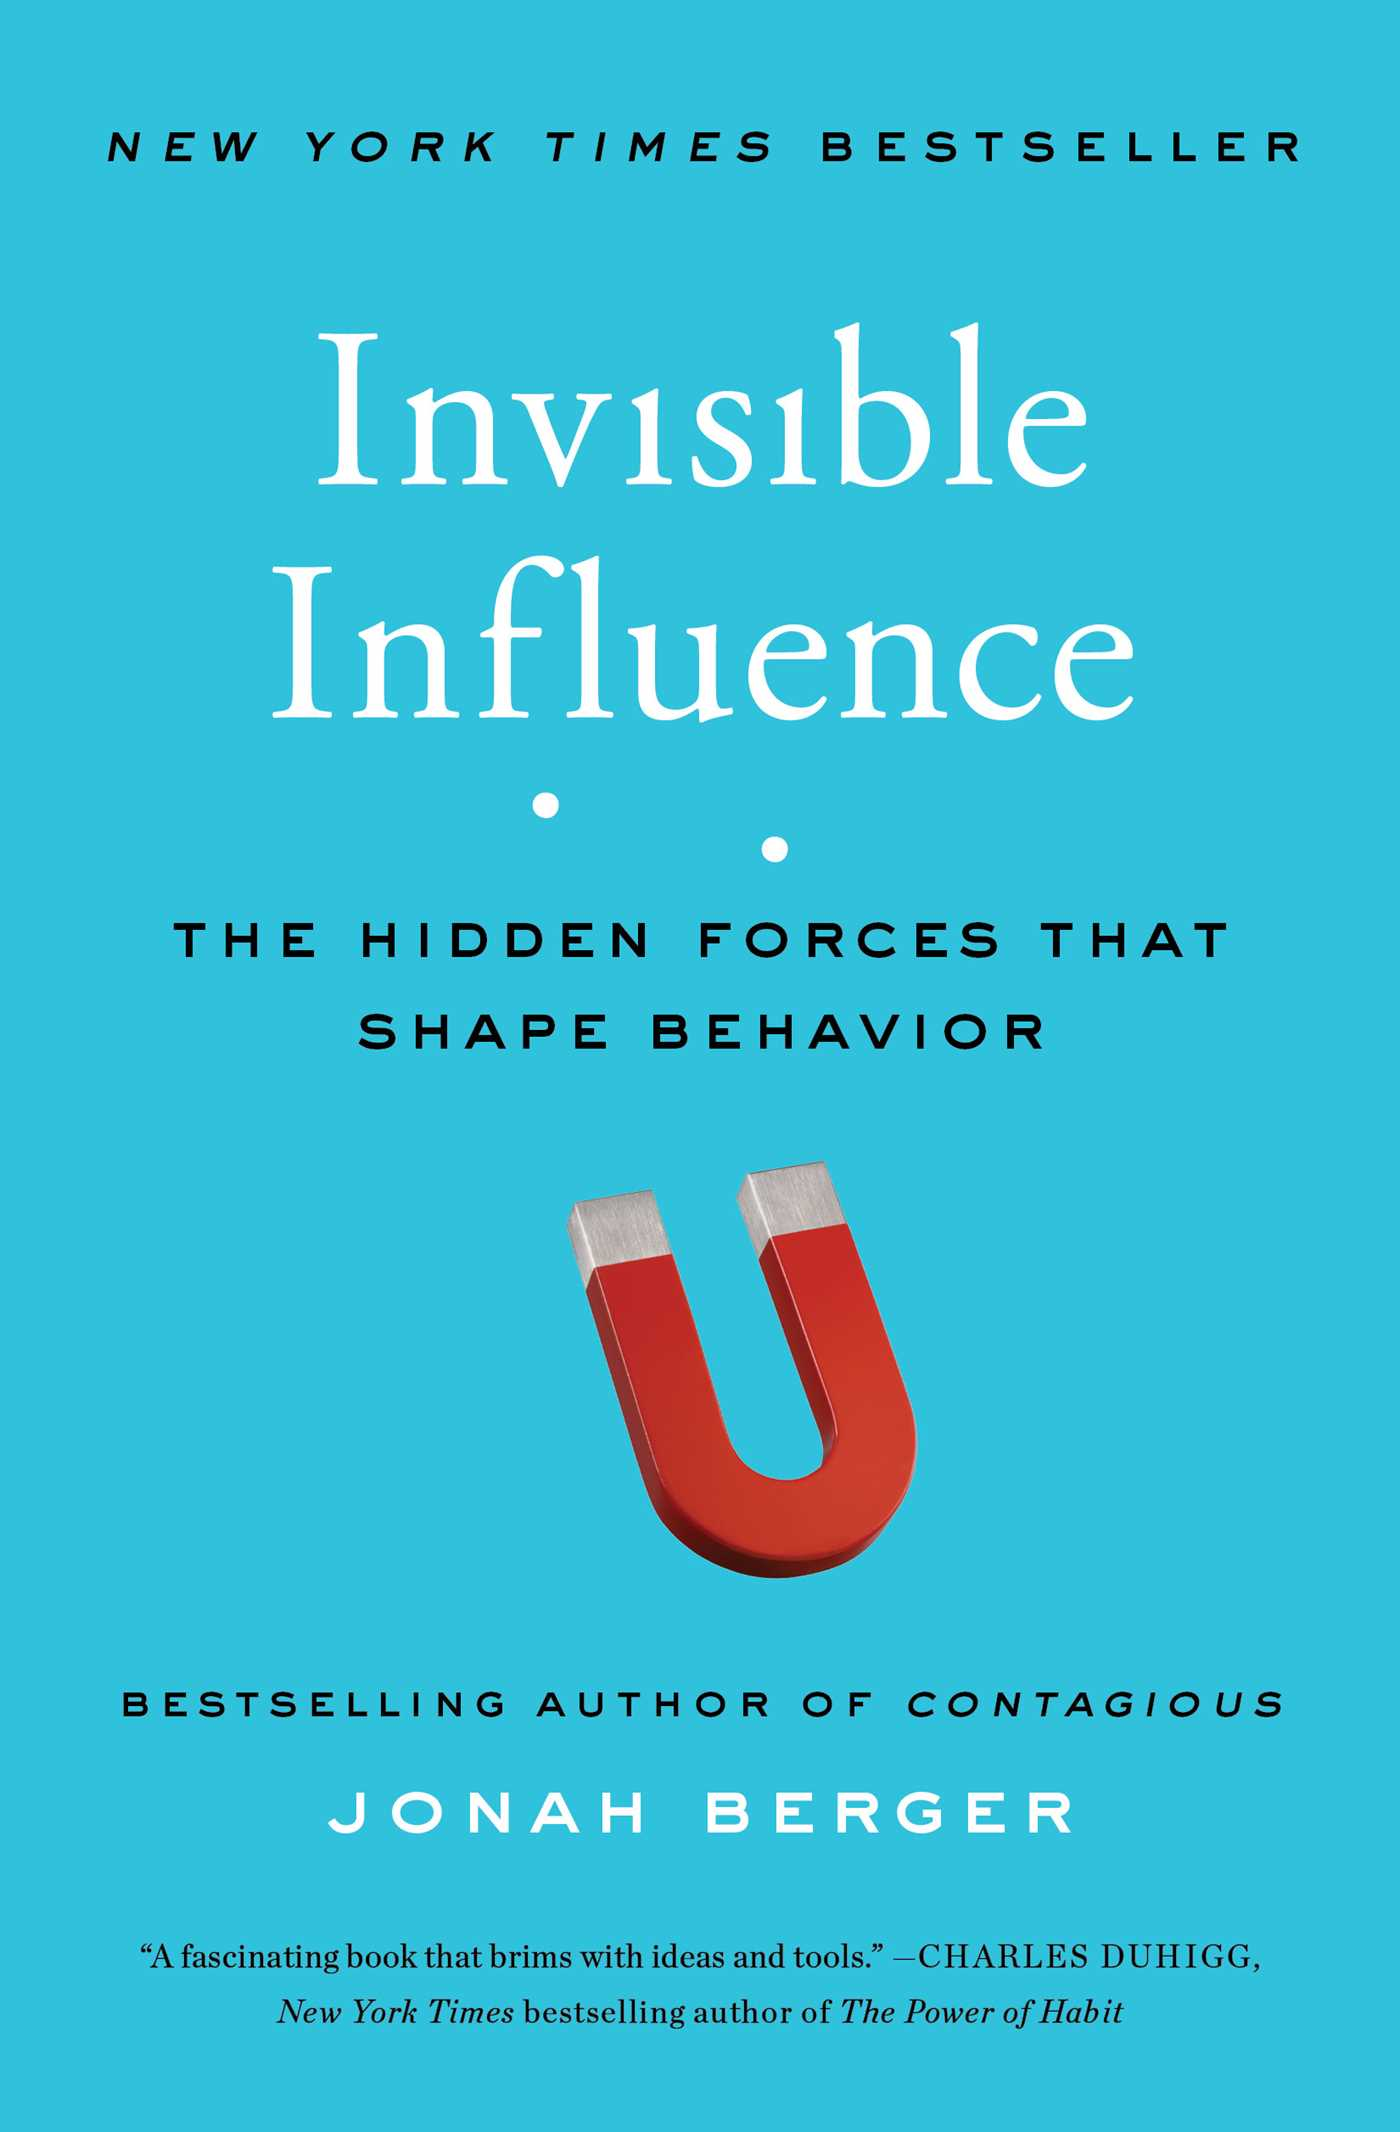 Download Ebook Invisible Influence by Jonah Berger Pdf